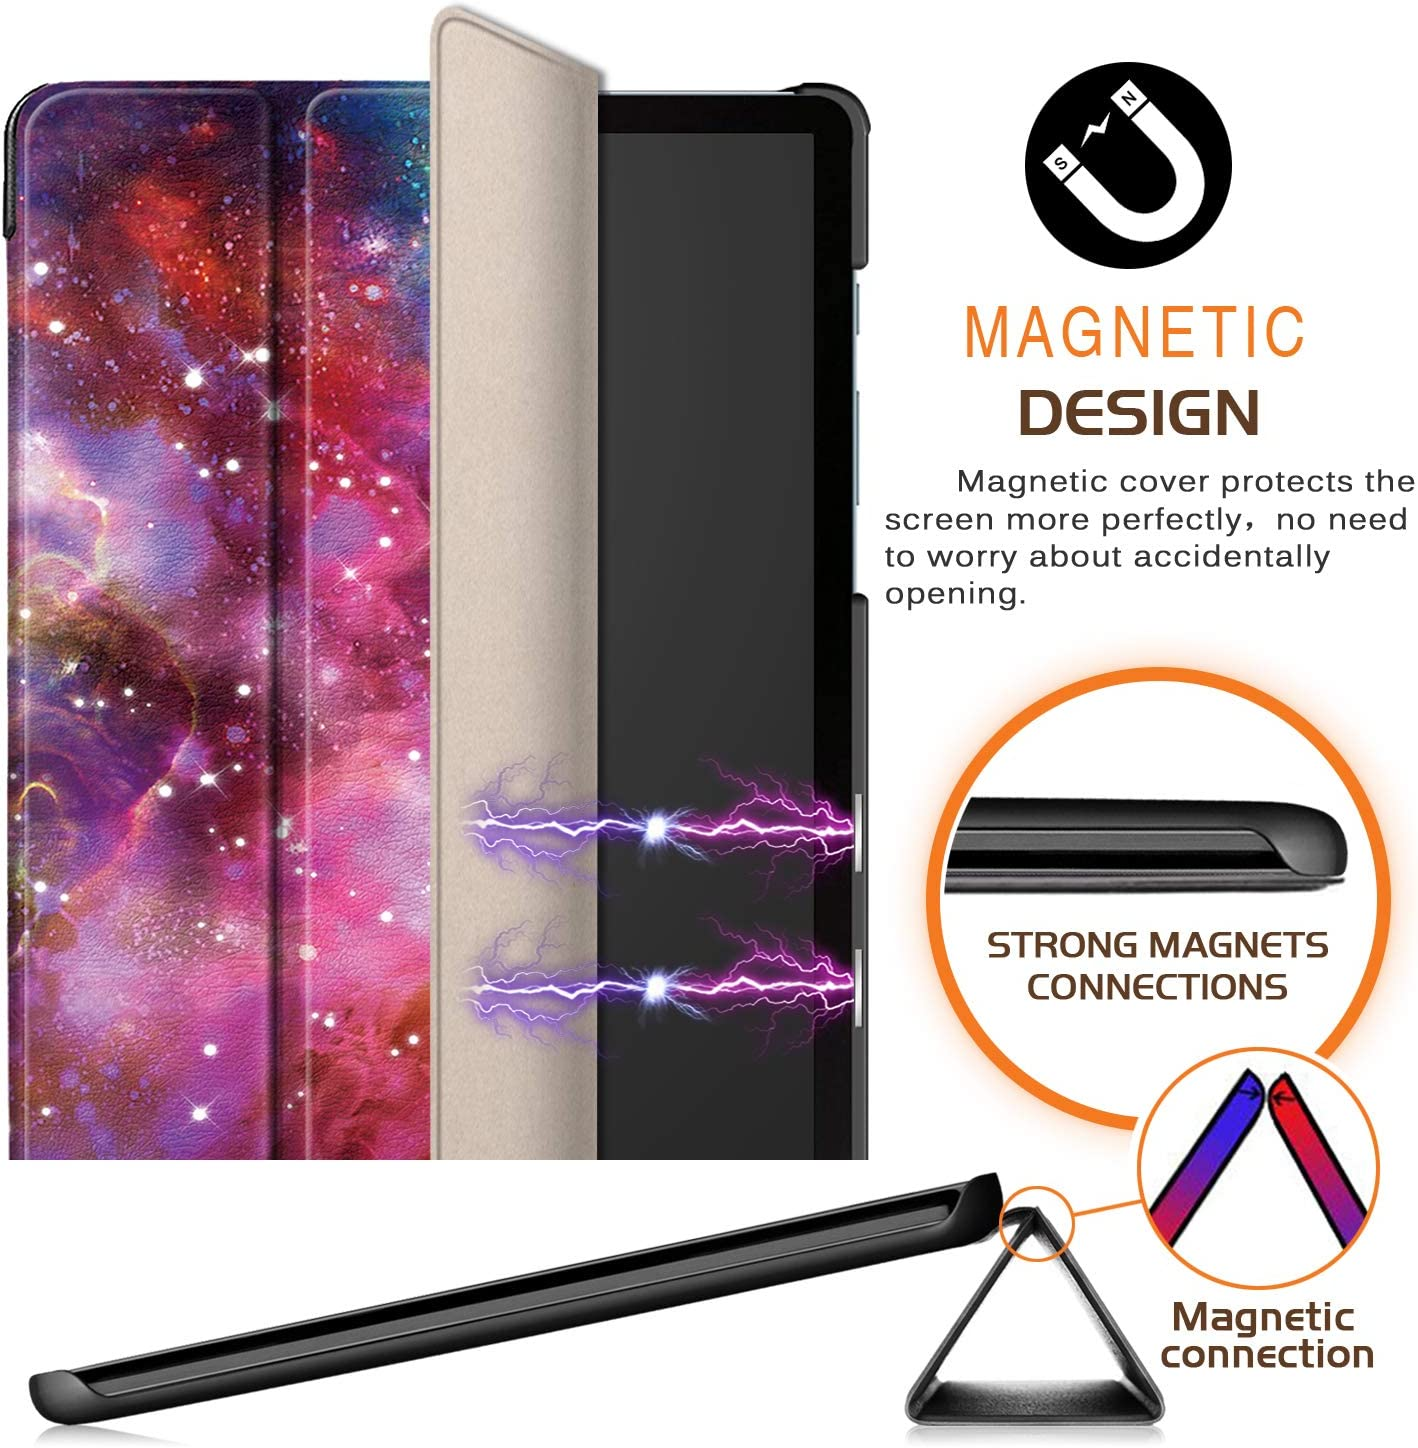 T860 T865 Xuanbeier Ultra Slim Case Compatible with Samsung Galaxy TAB S6 10.5 SM Standing cover for Galaxy Tab S 6 10.5inch 2019 Version Dont touch